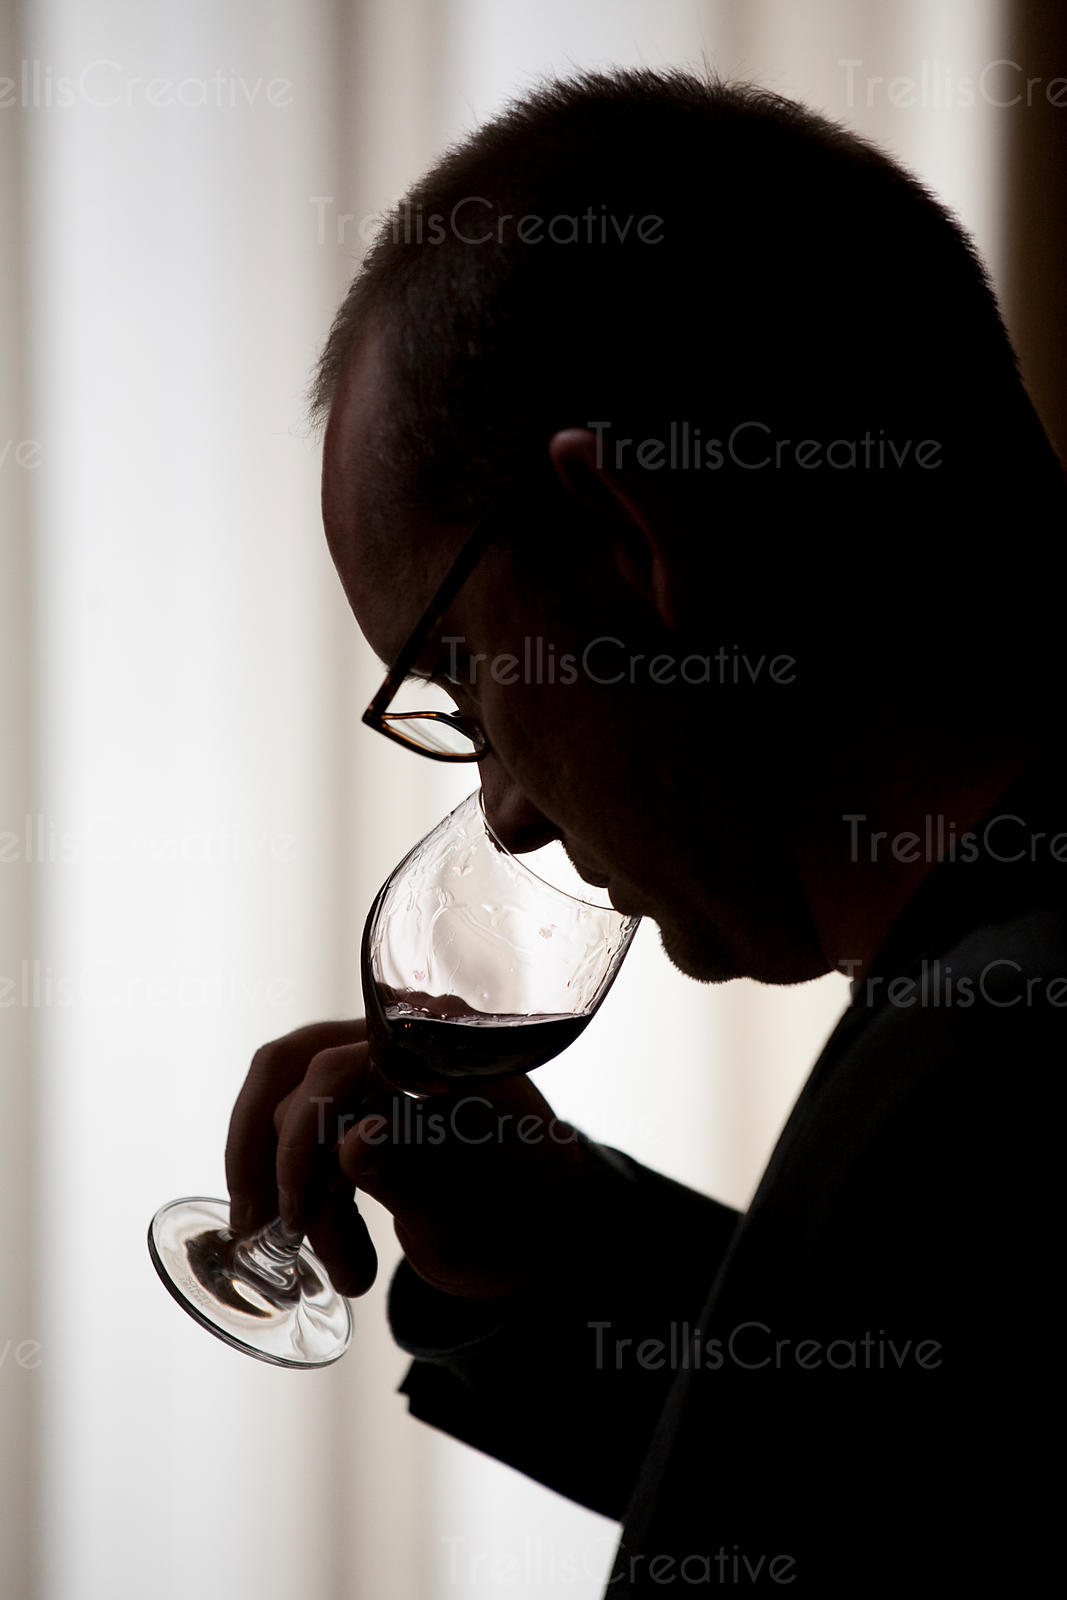 Silhouette of a man smelling a glass of red wine